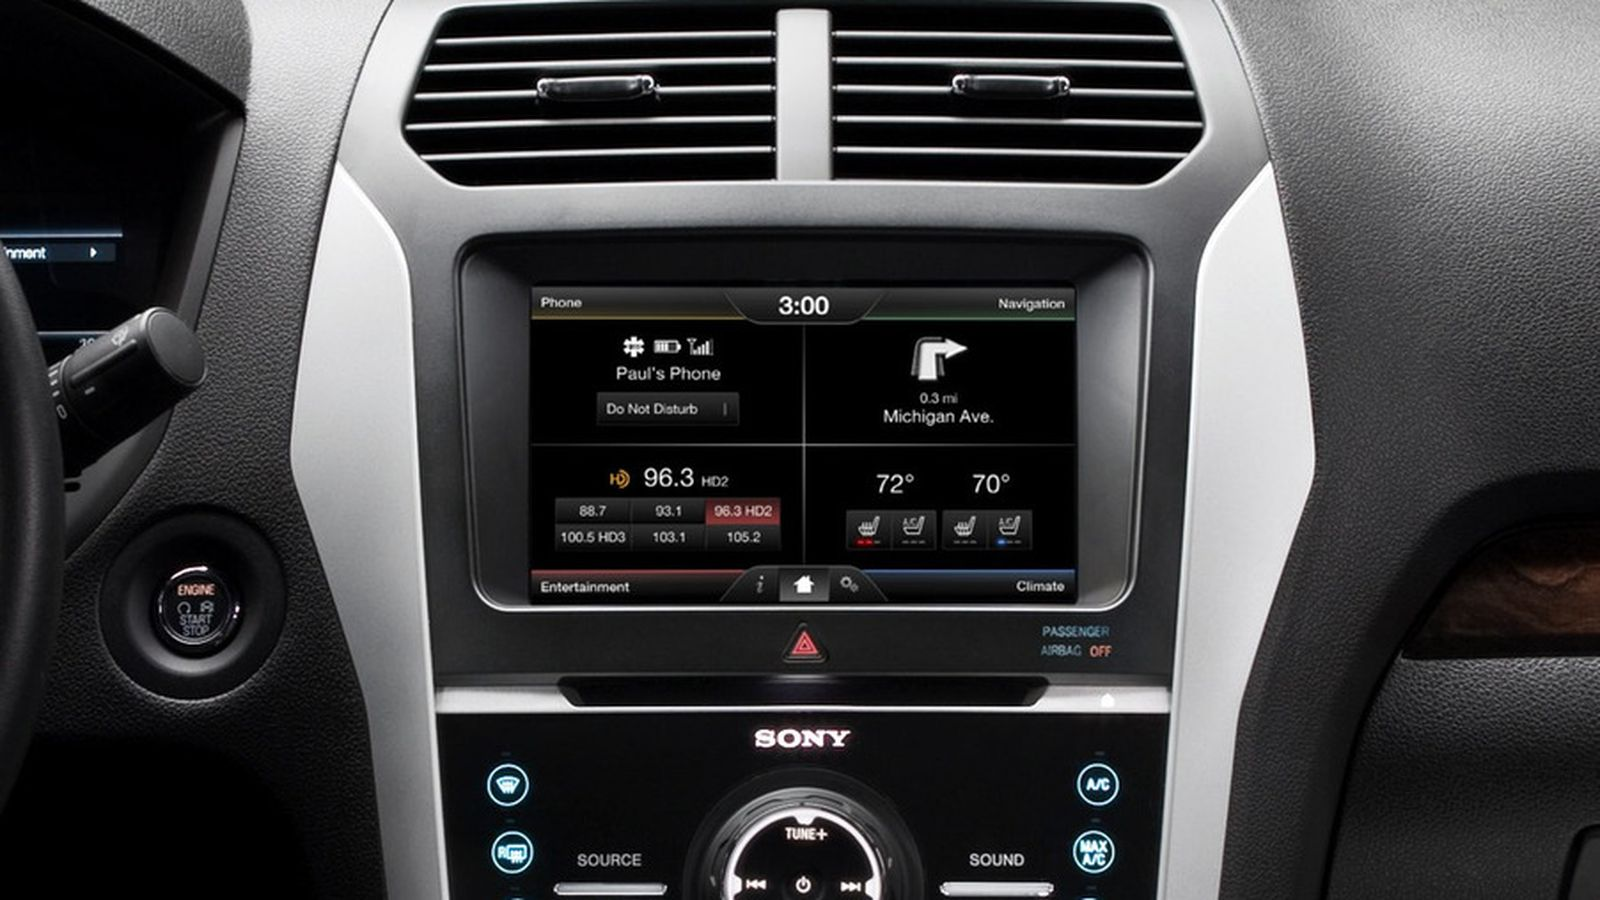 Myford Touch Update >> MyFord Touch 2013 update designed around customer feedback - The Verge